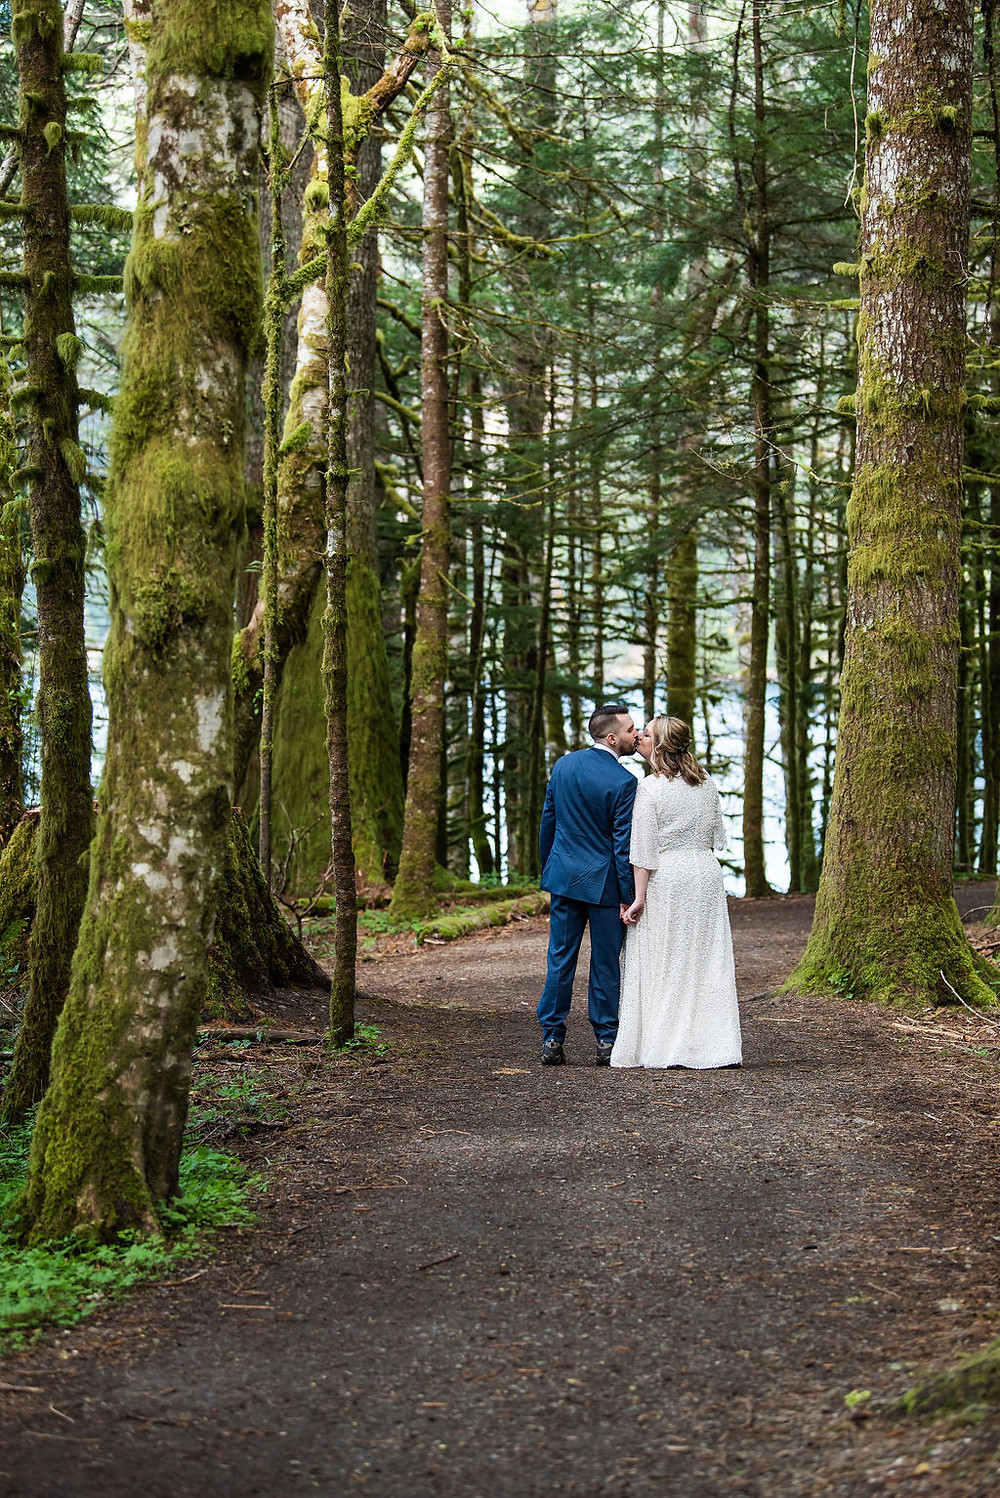 A couple walks though the rainforest on their adventure wedding day in Olympic National Park